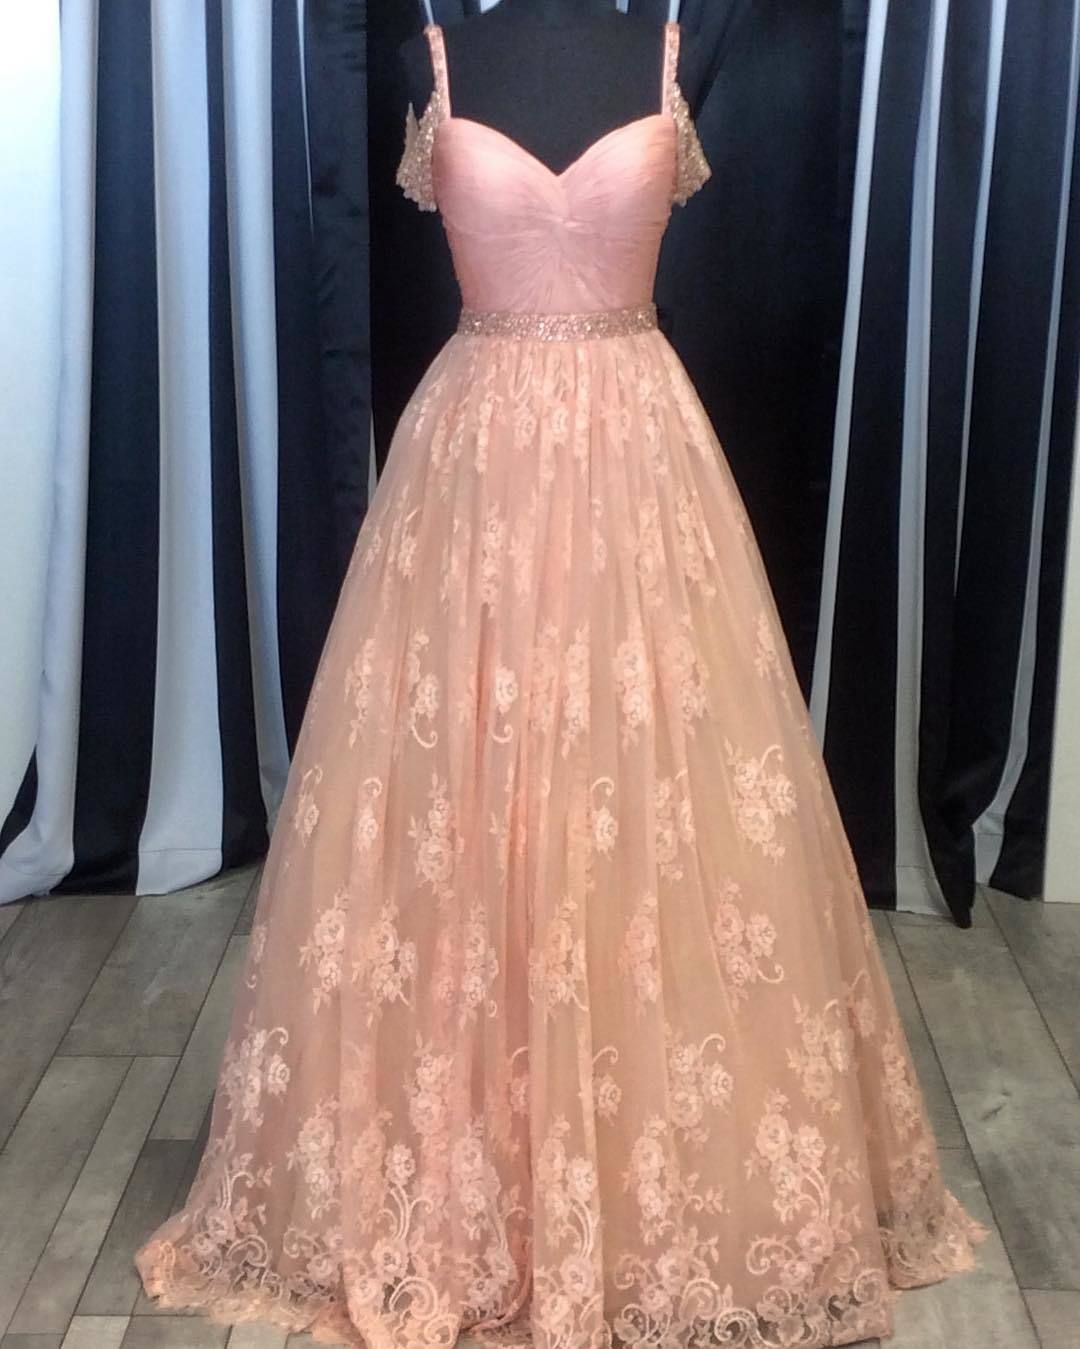 509b8dca21c Bush Pink Lace Ball Gowns Prom Dress 2017